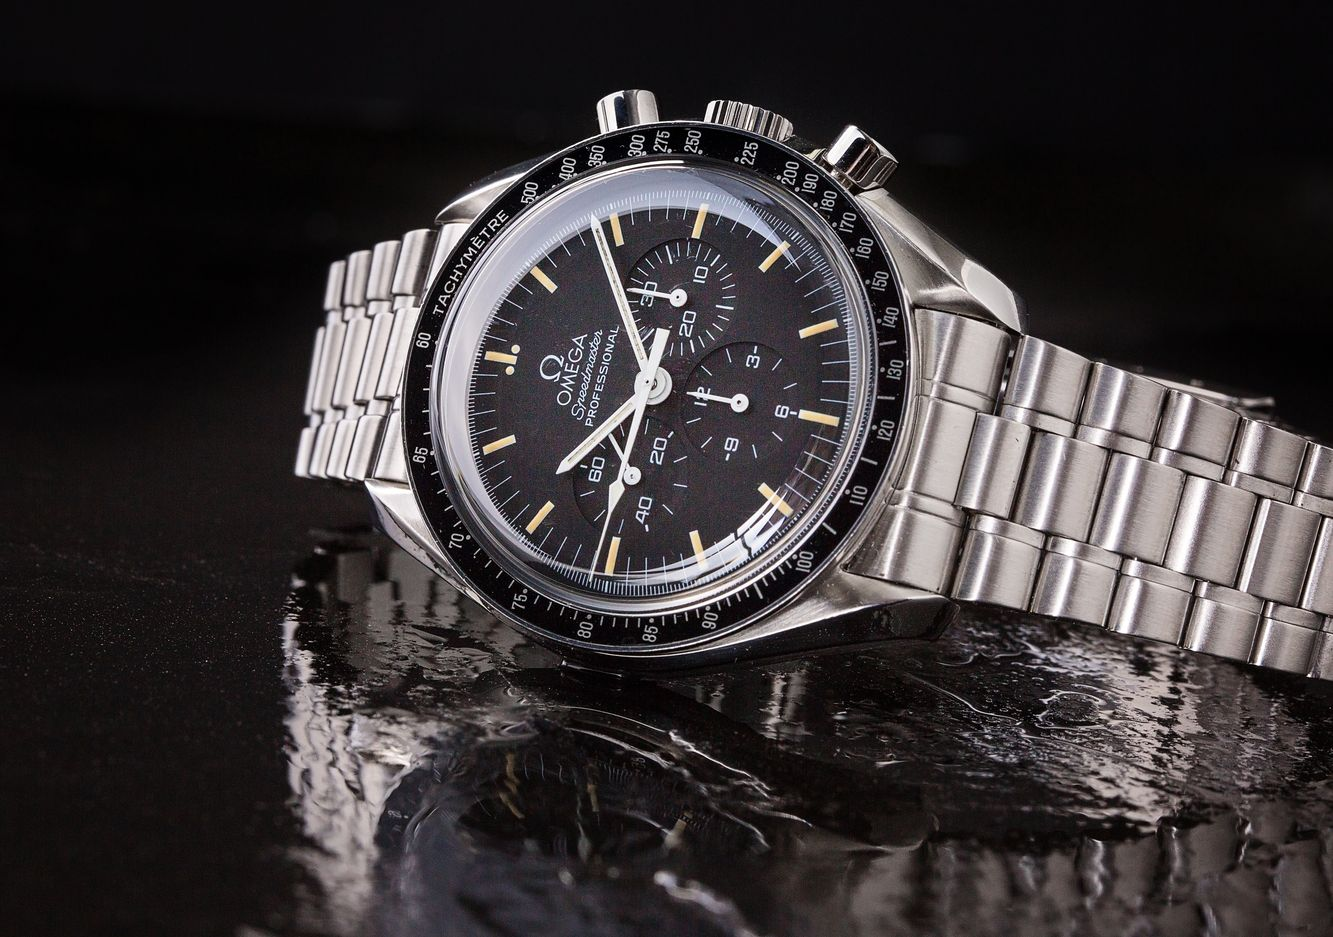 Omega SpeedMaster 5D3 0377 Edit 1 - Luxury Watch Brands Like Rolex: The Official Buying Guide